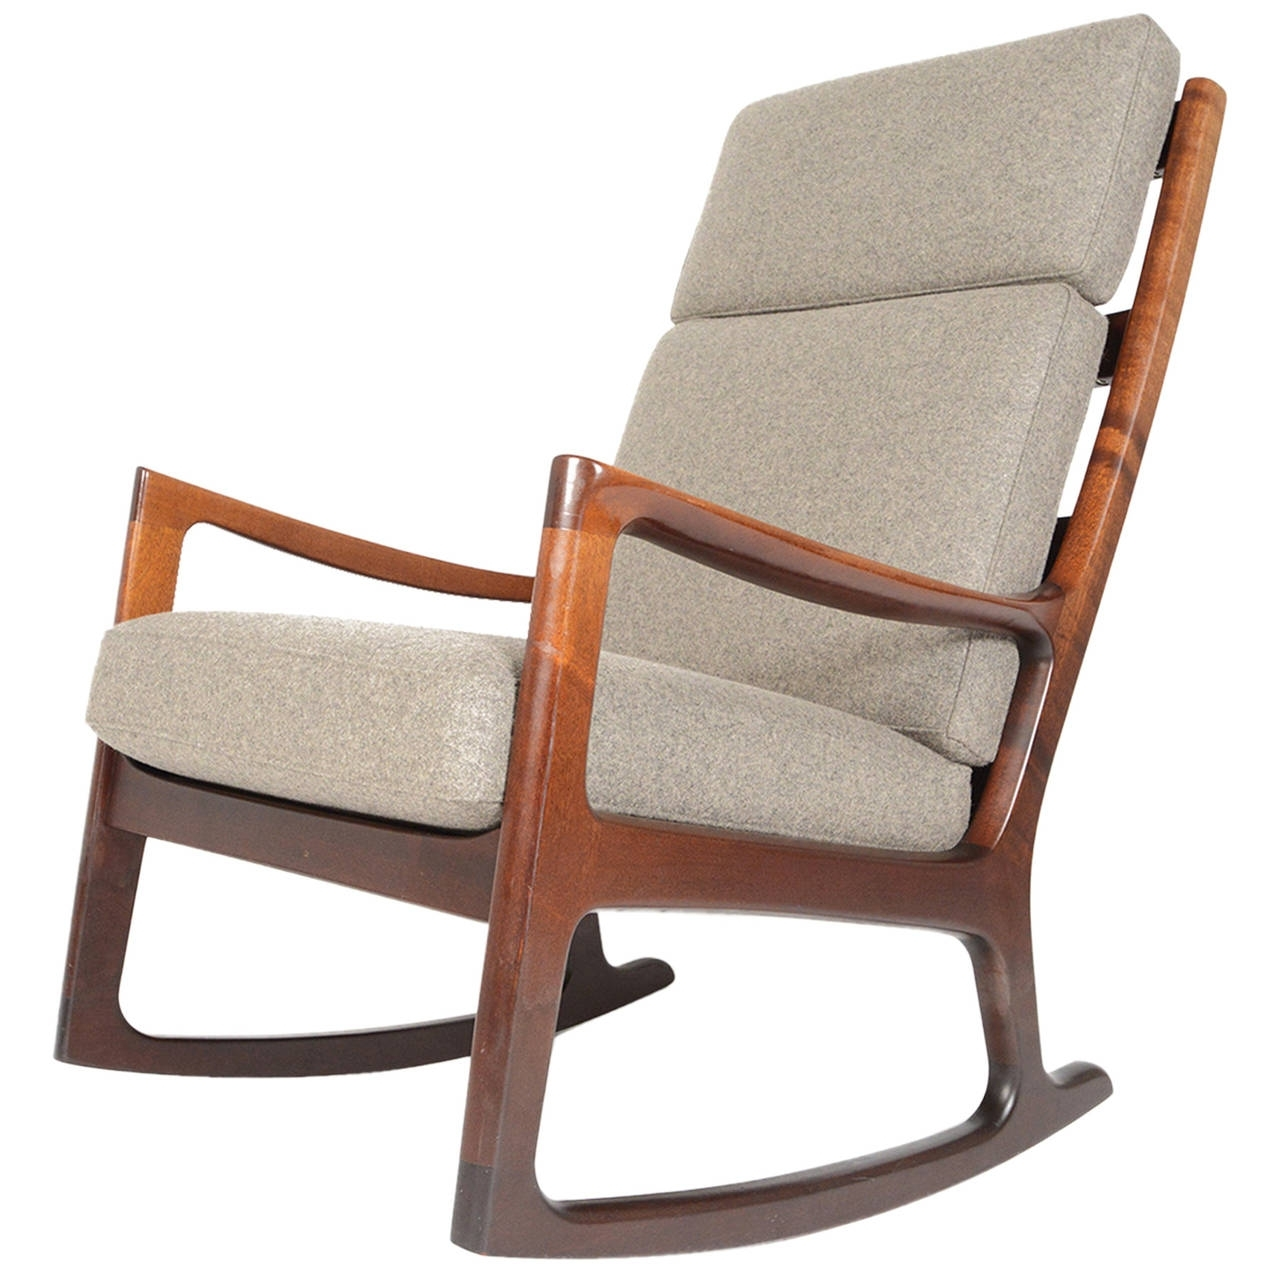 High Back Rocking Chairs With Regard To Most Up To Date Ole Wanscher Mahogany Highback Rocking Chair At 1Stdibs (View 1 of 15)